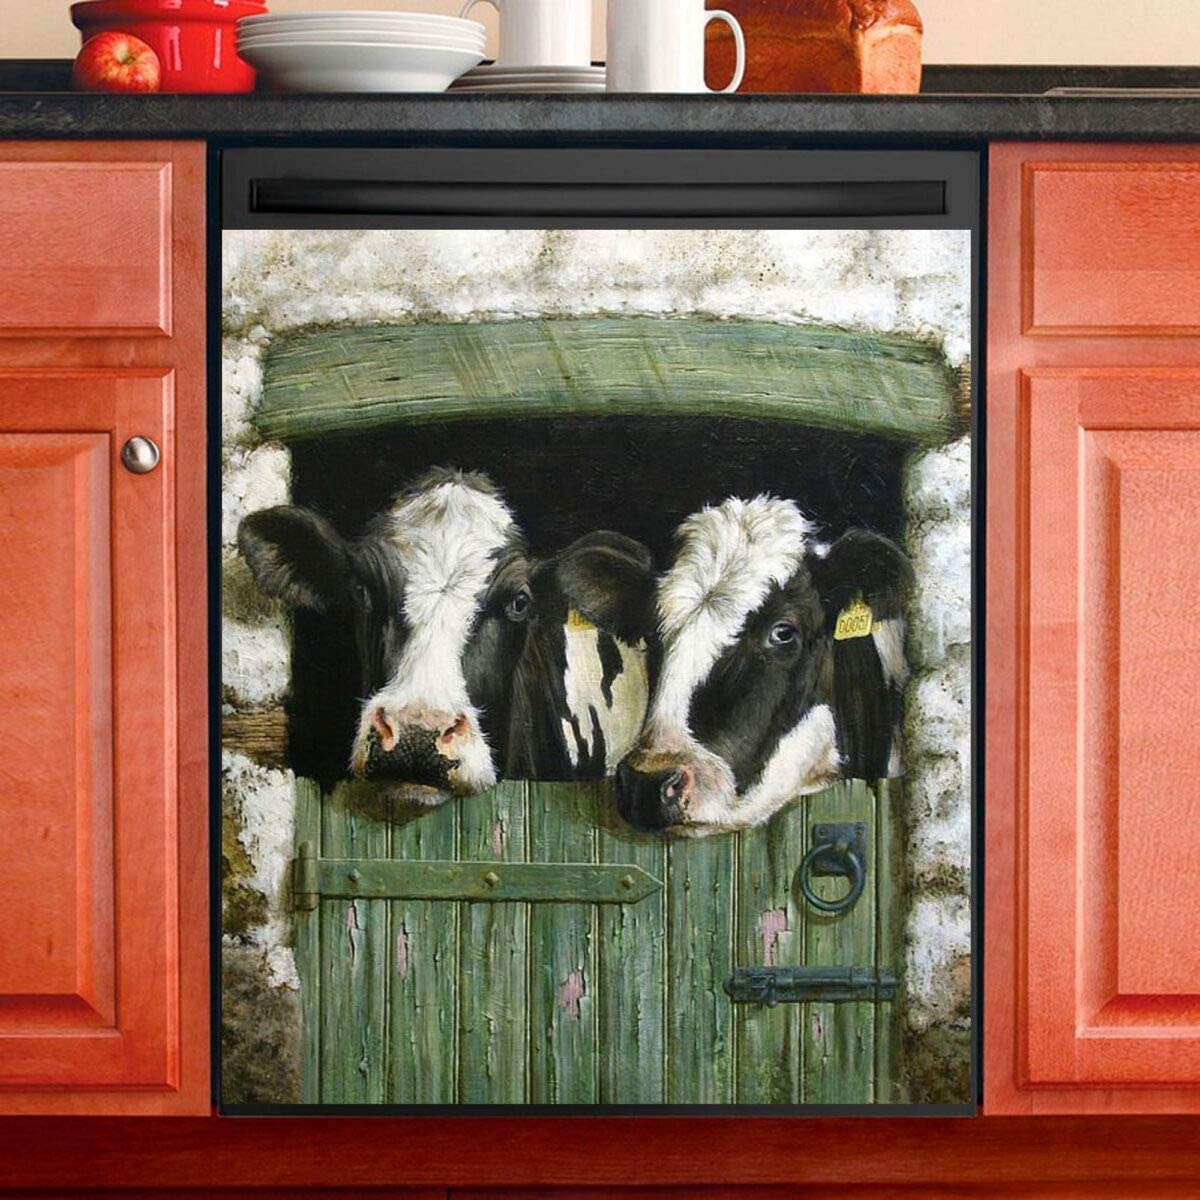 Magnetic Dishwasher Sticker Cow Dish Washer Cover for Kitchen Decor Full Size